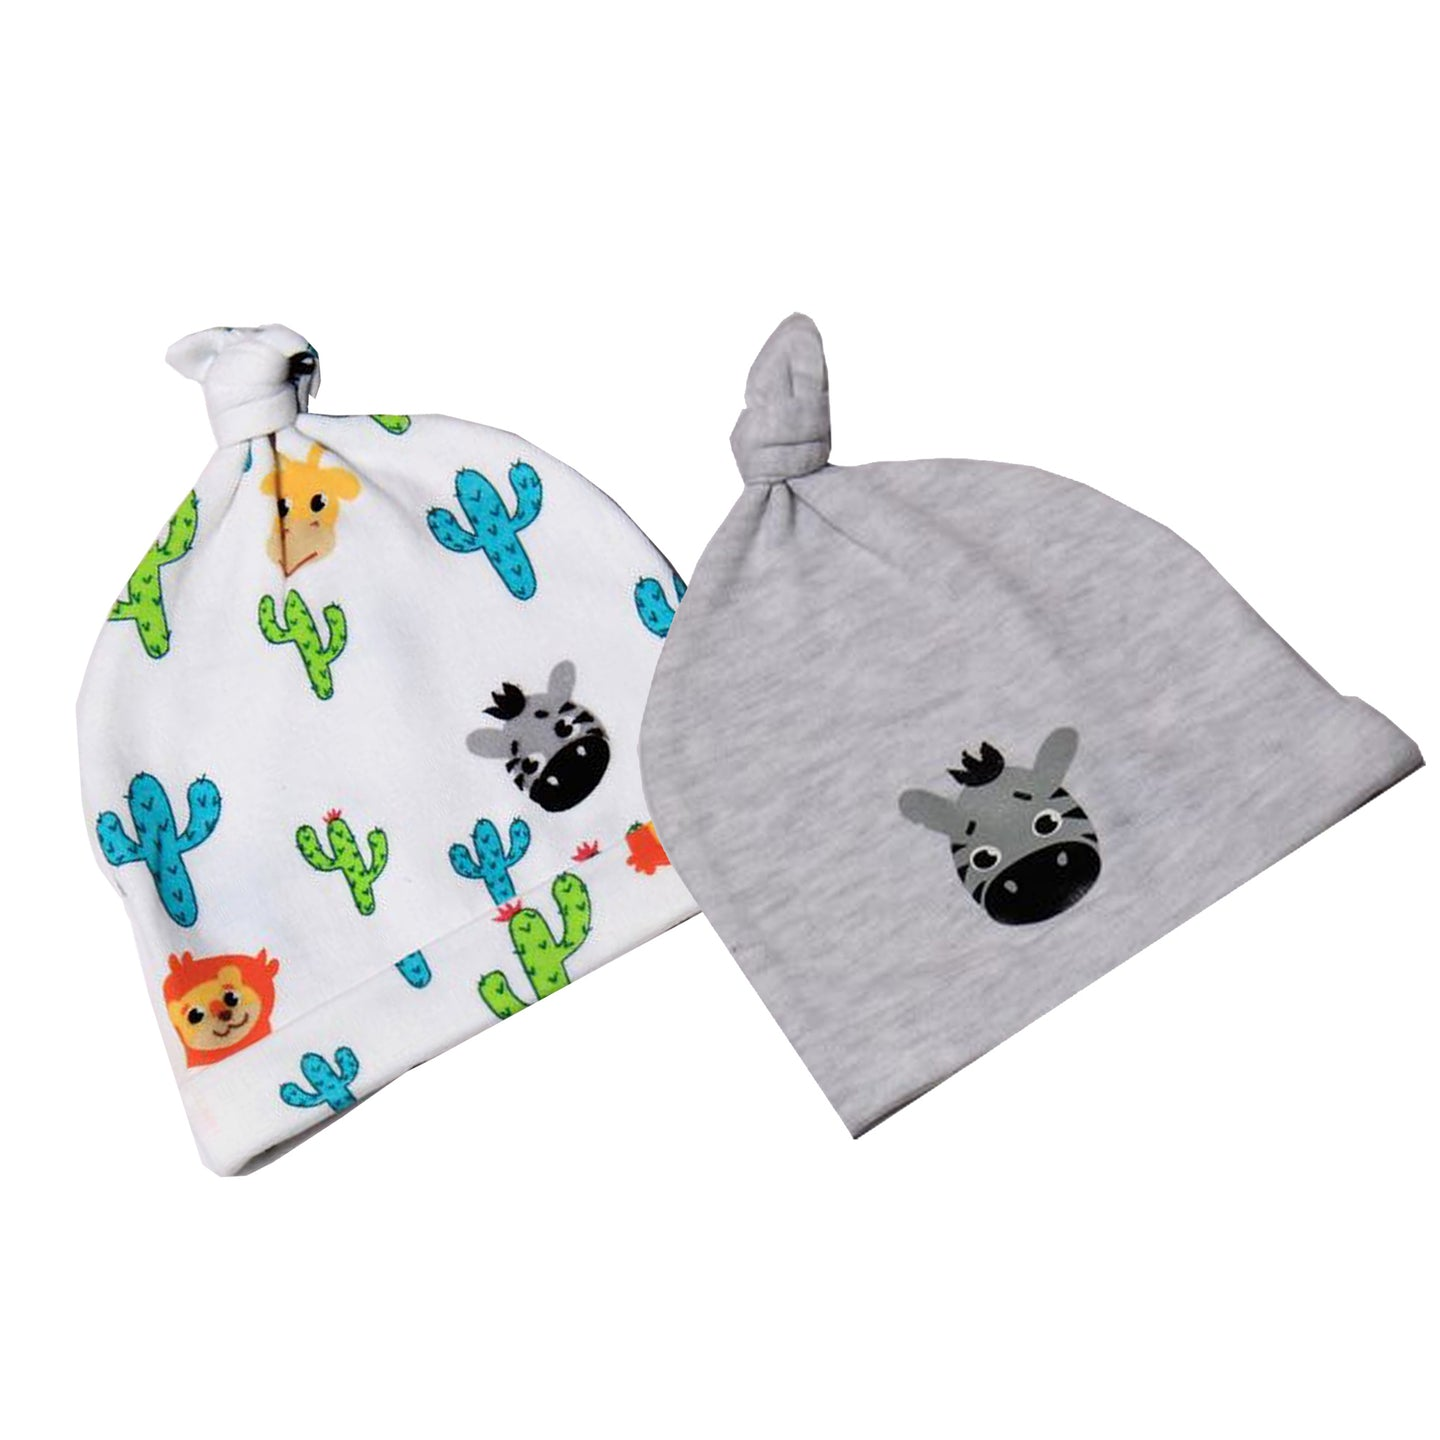 FS-79 Accessories for Baby Boy 2-Pack Caps - Animal and Zebra Print - Featherhead Baby